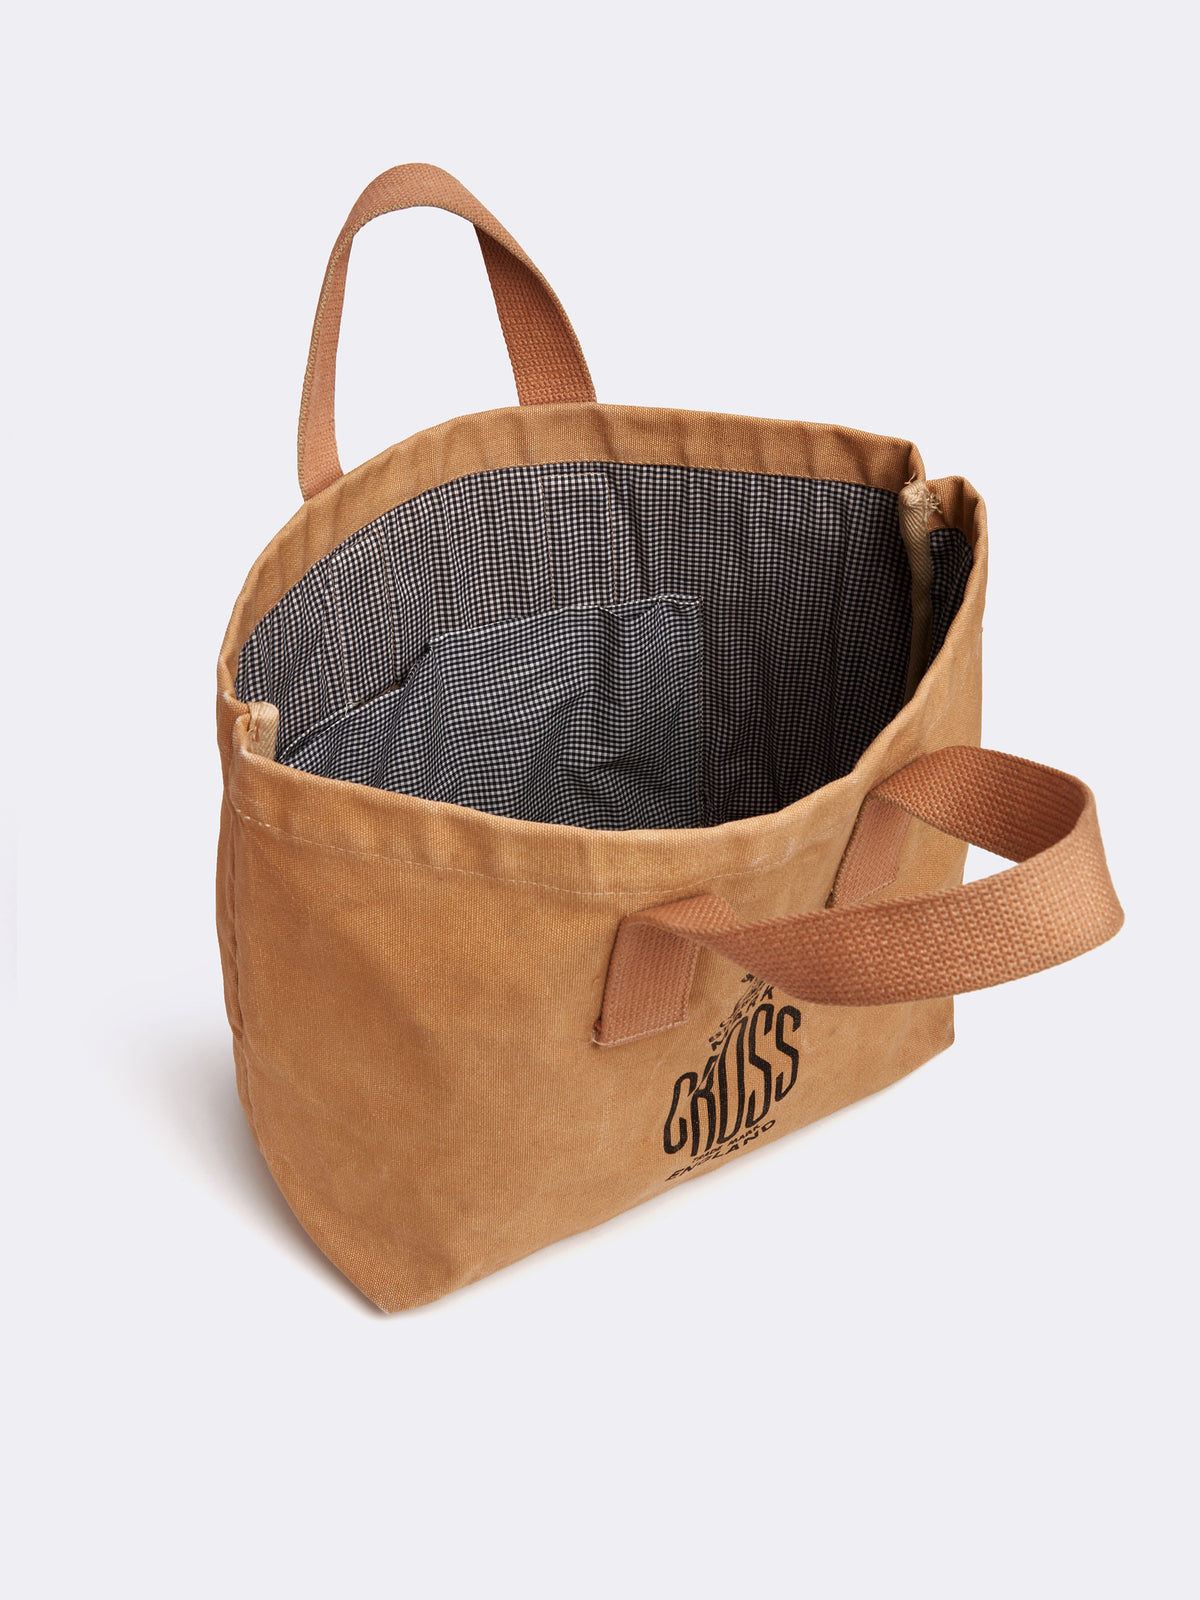 Mark Cross Archive Canvas Tote Bag Tan Interior